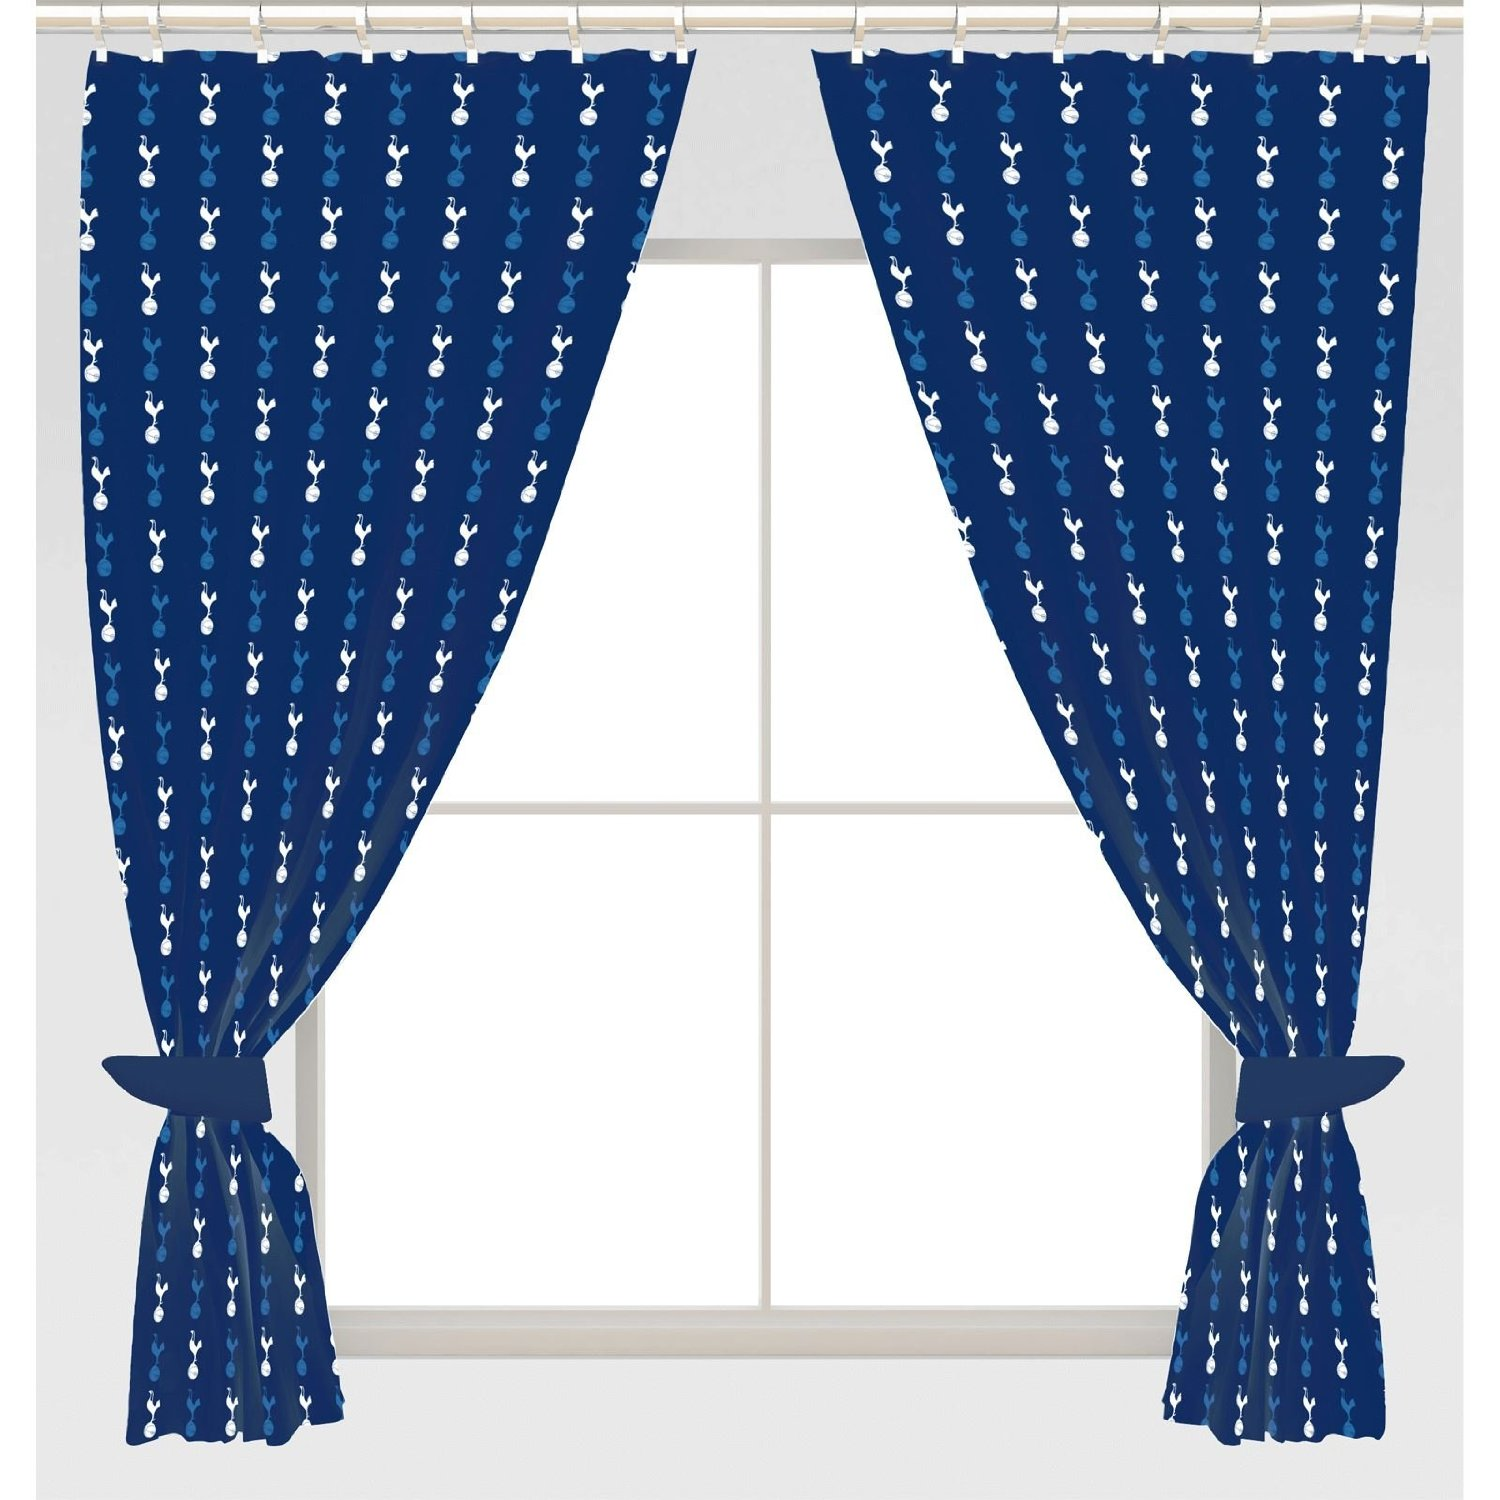 Tottenham Hotspur F C Crest Design Pair Of Curtains 54 Inch